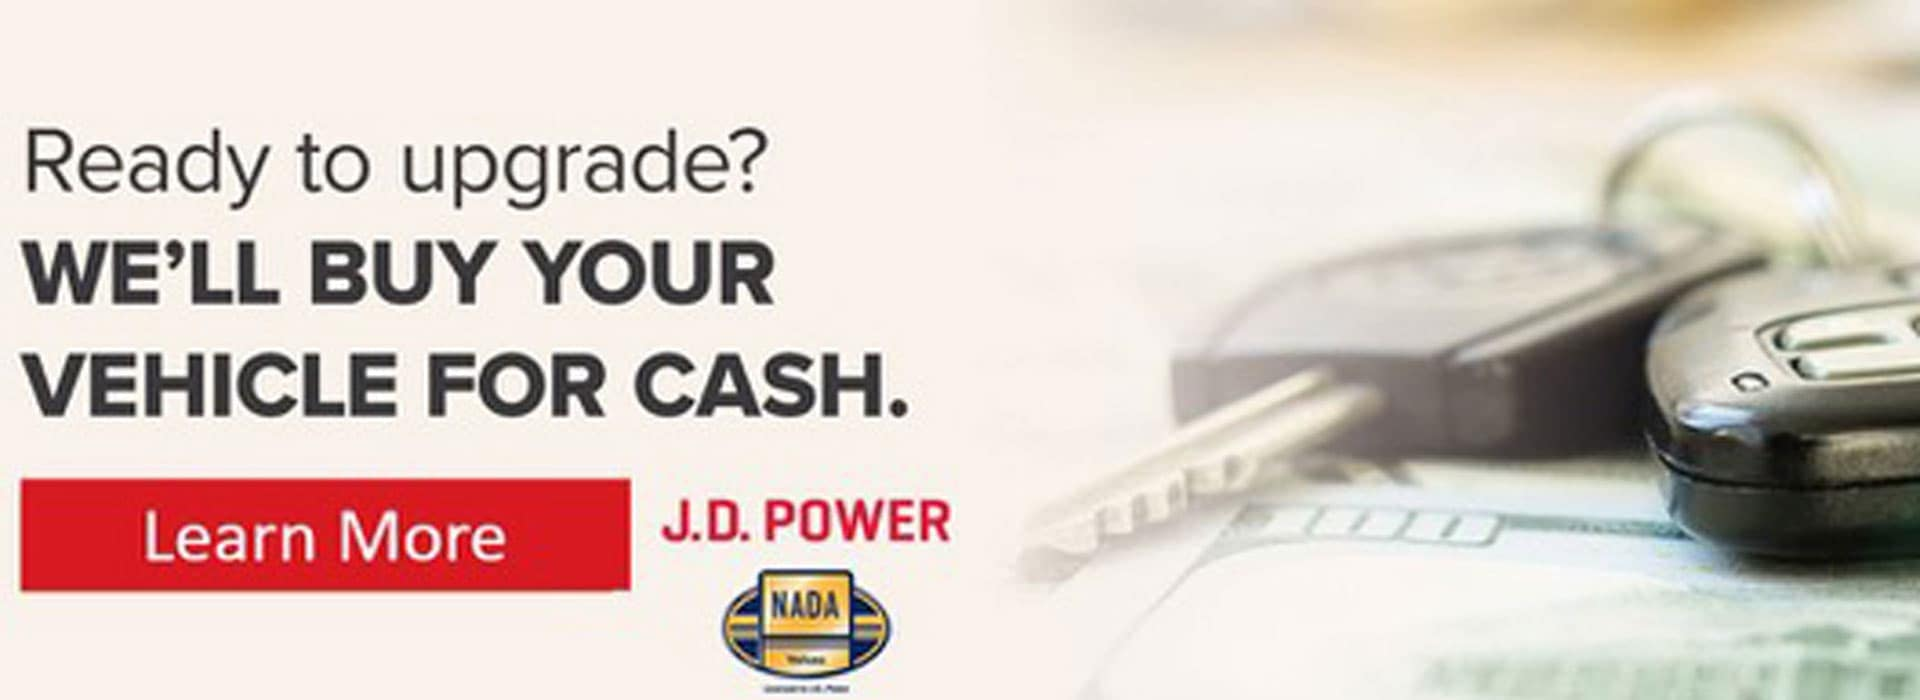 Ready to upgrade? We'll buy your vehicle for cash.